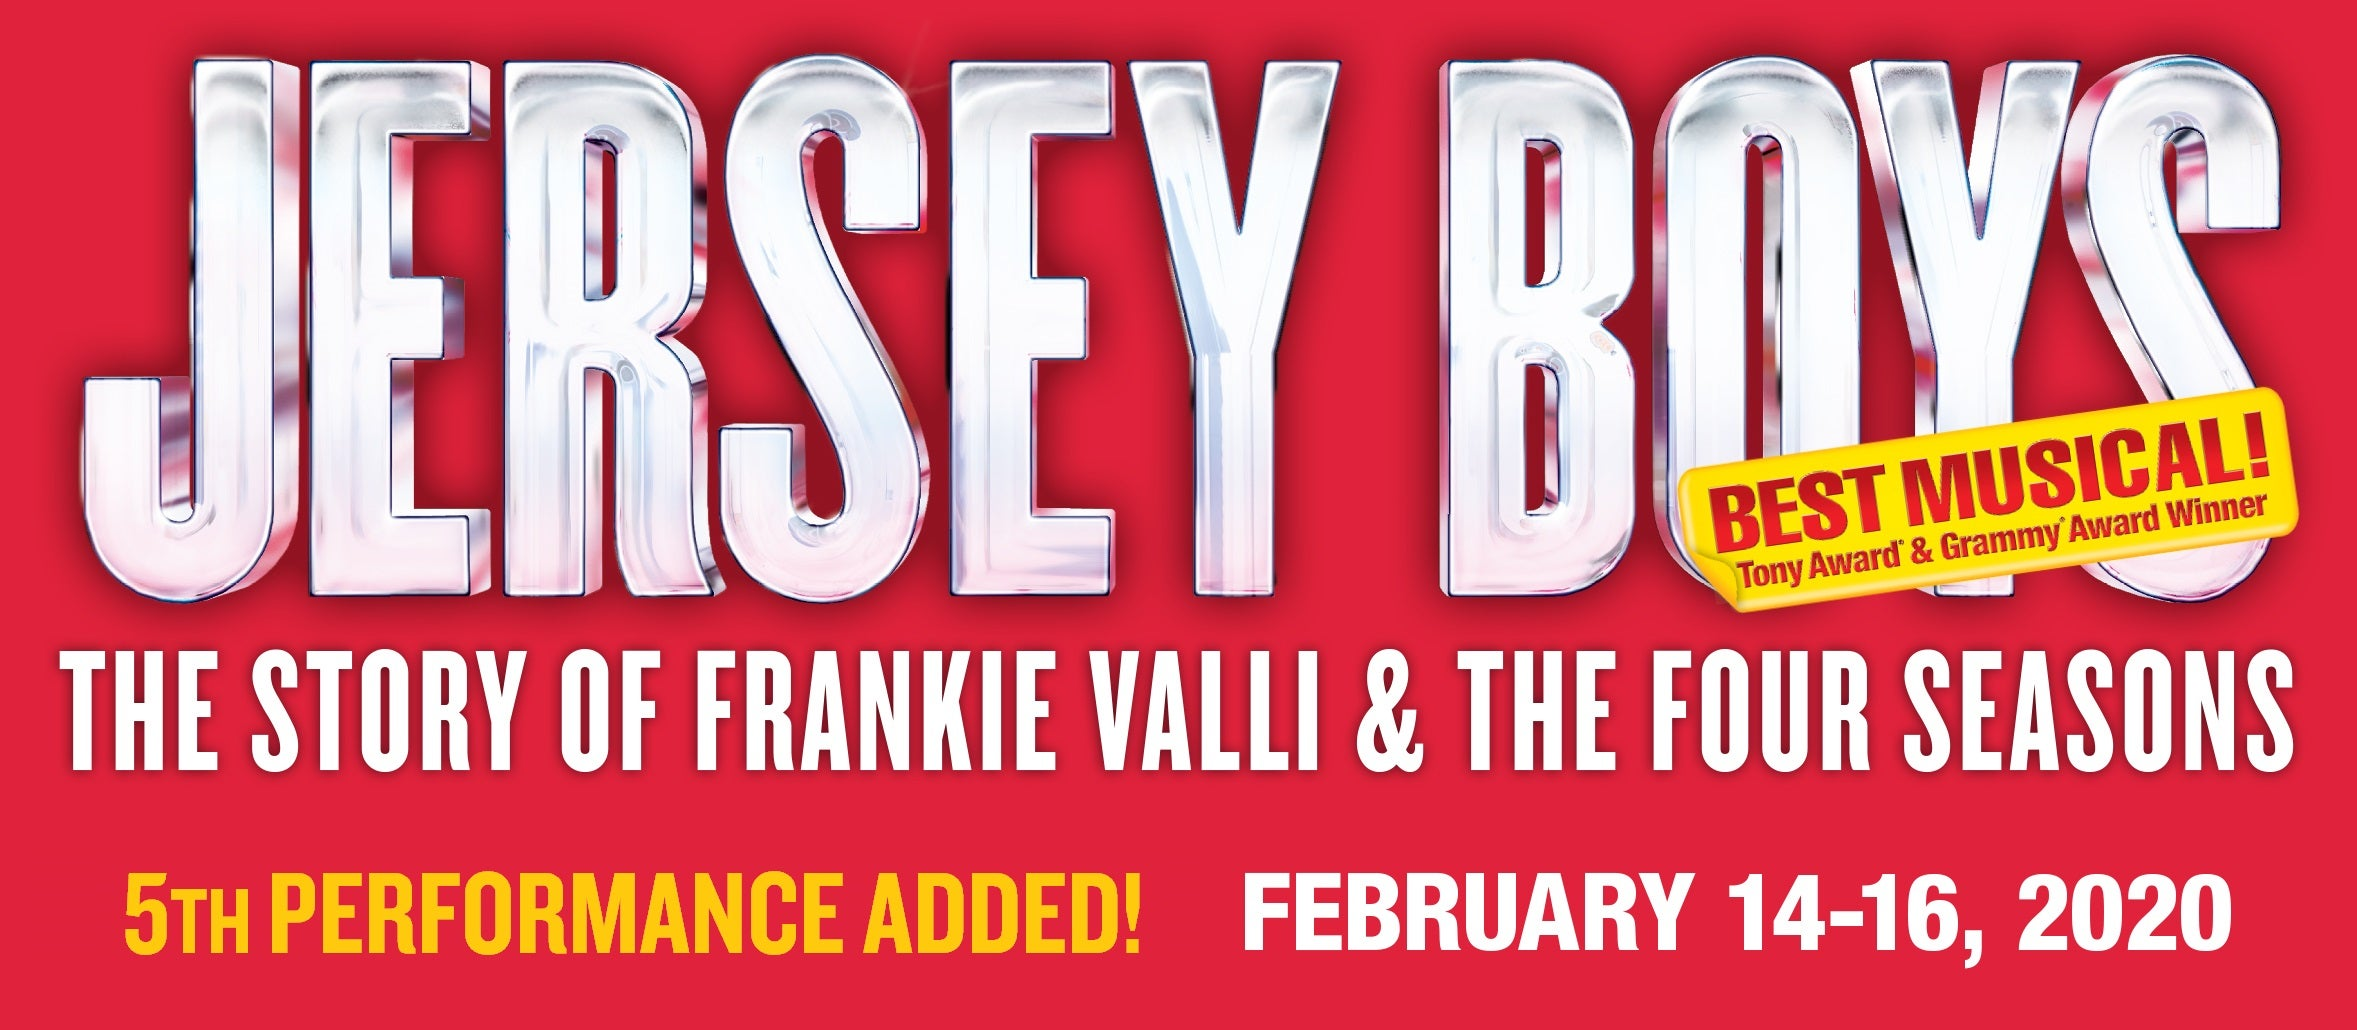 JERSEY BOYS - 5th PERFORMANCE ADDED